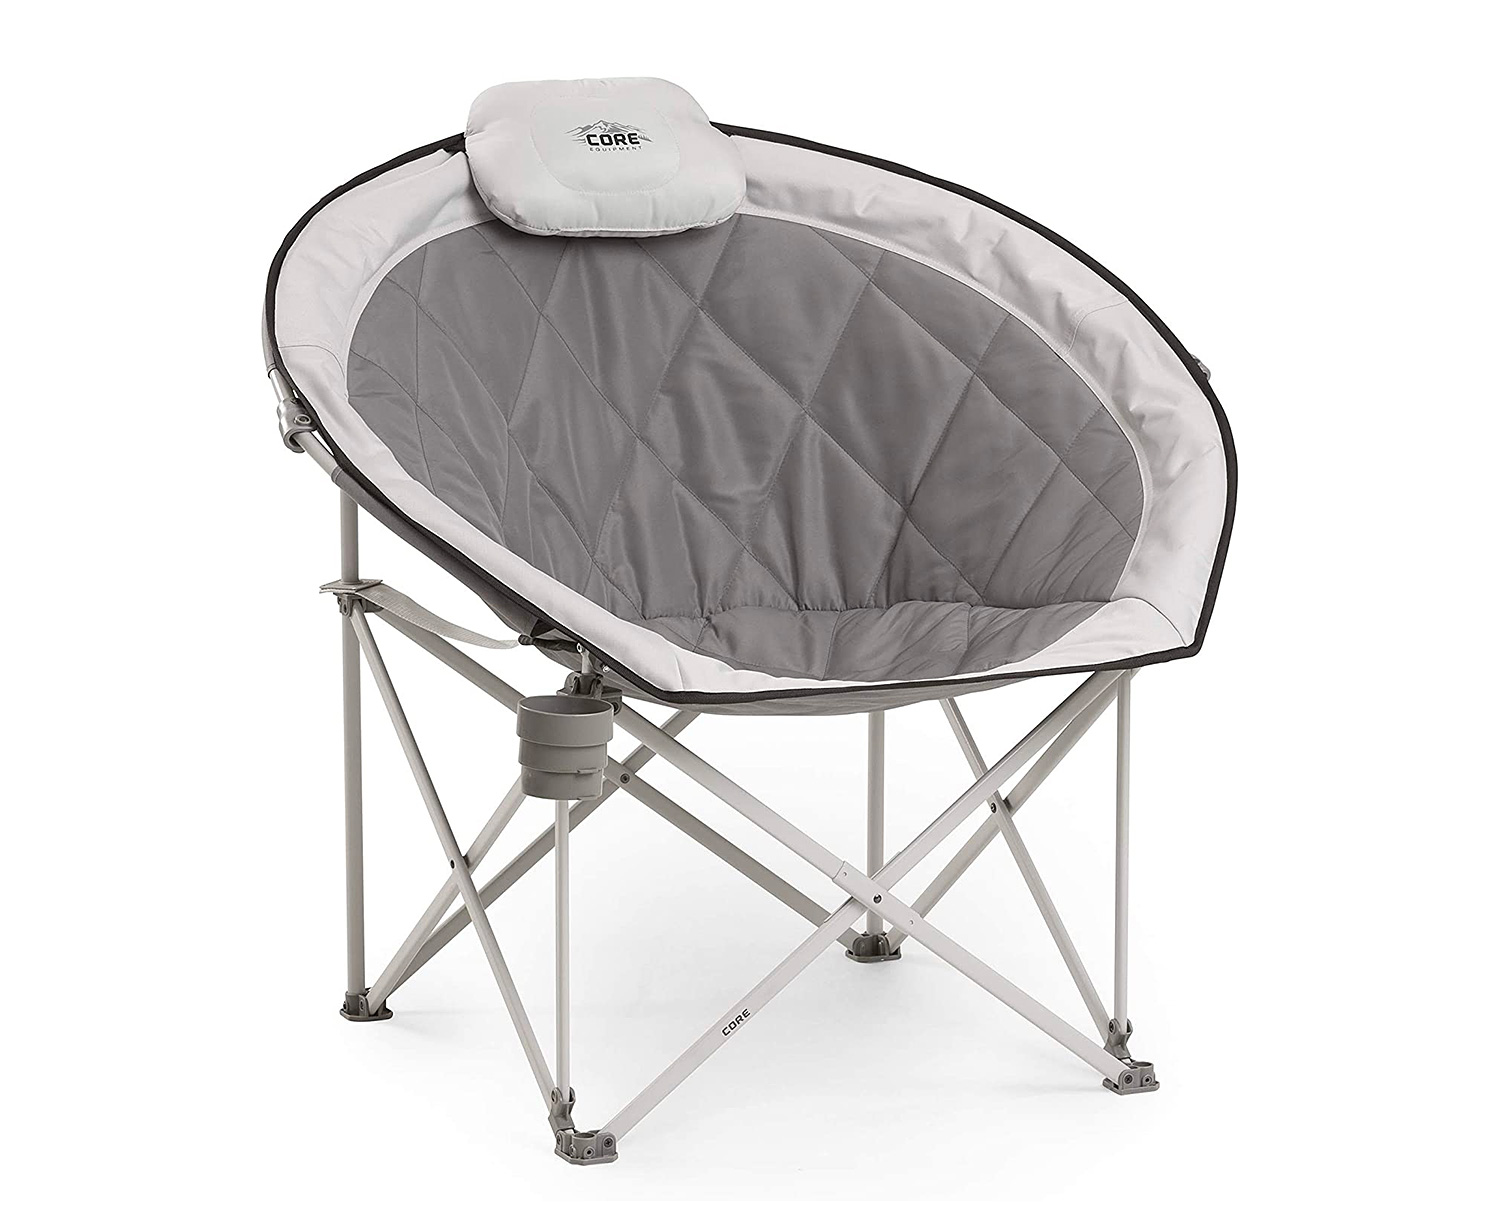 Kick Back & Chill Out In Core Equipment's Moon Round Saucer Chair at werd.com